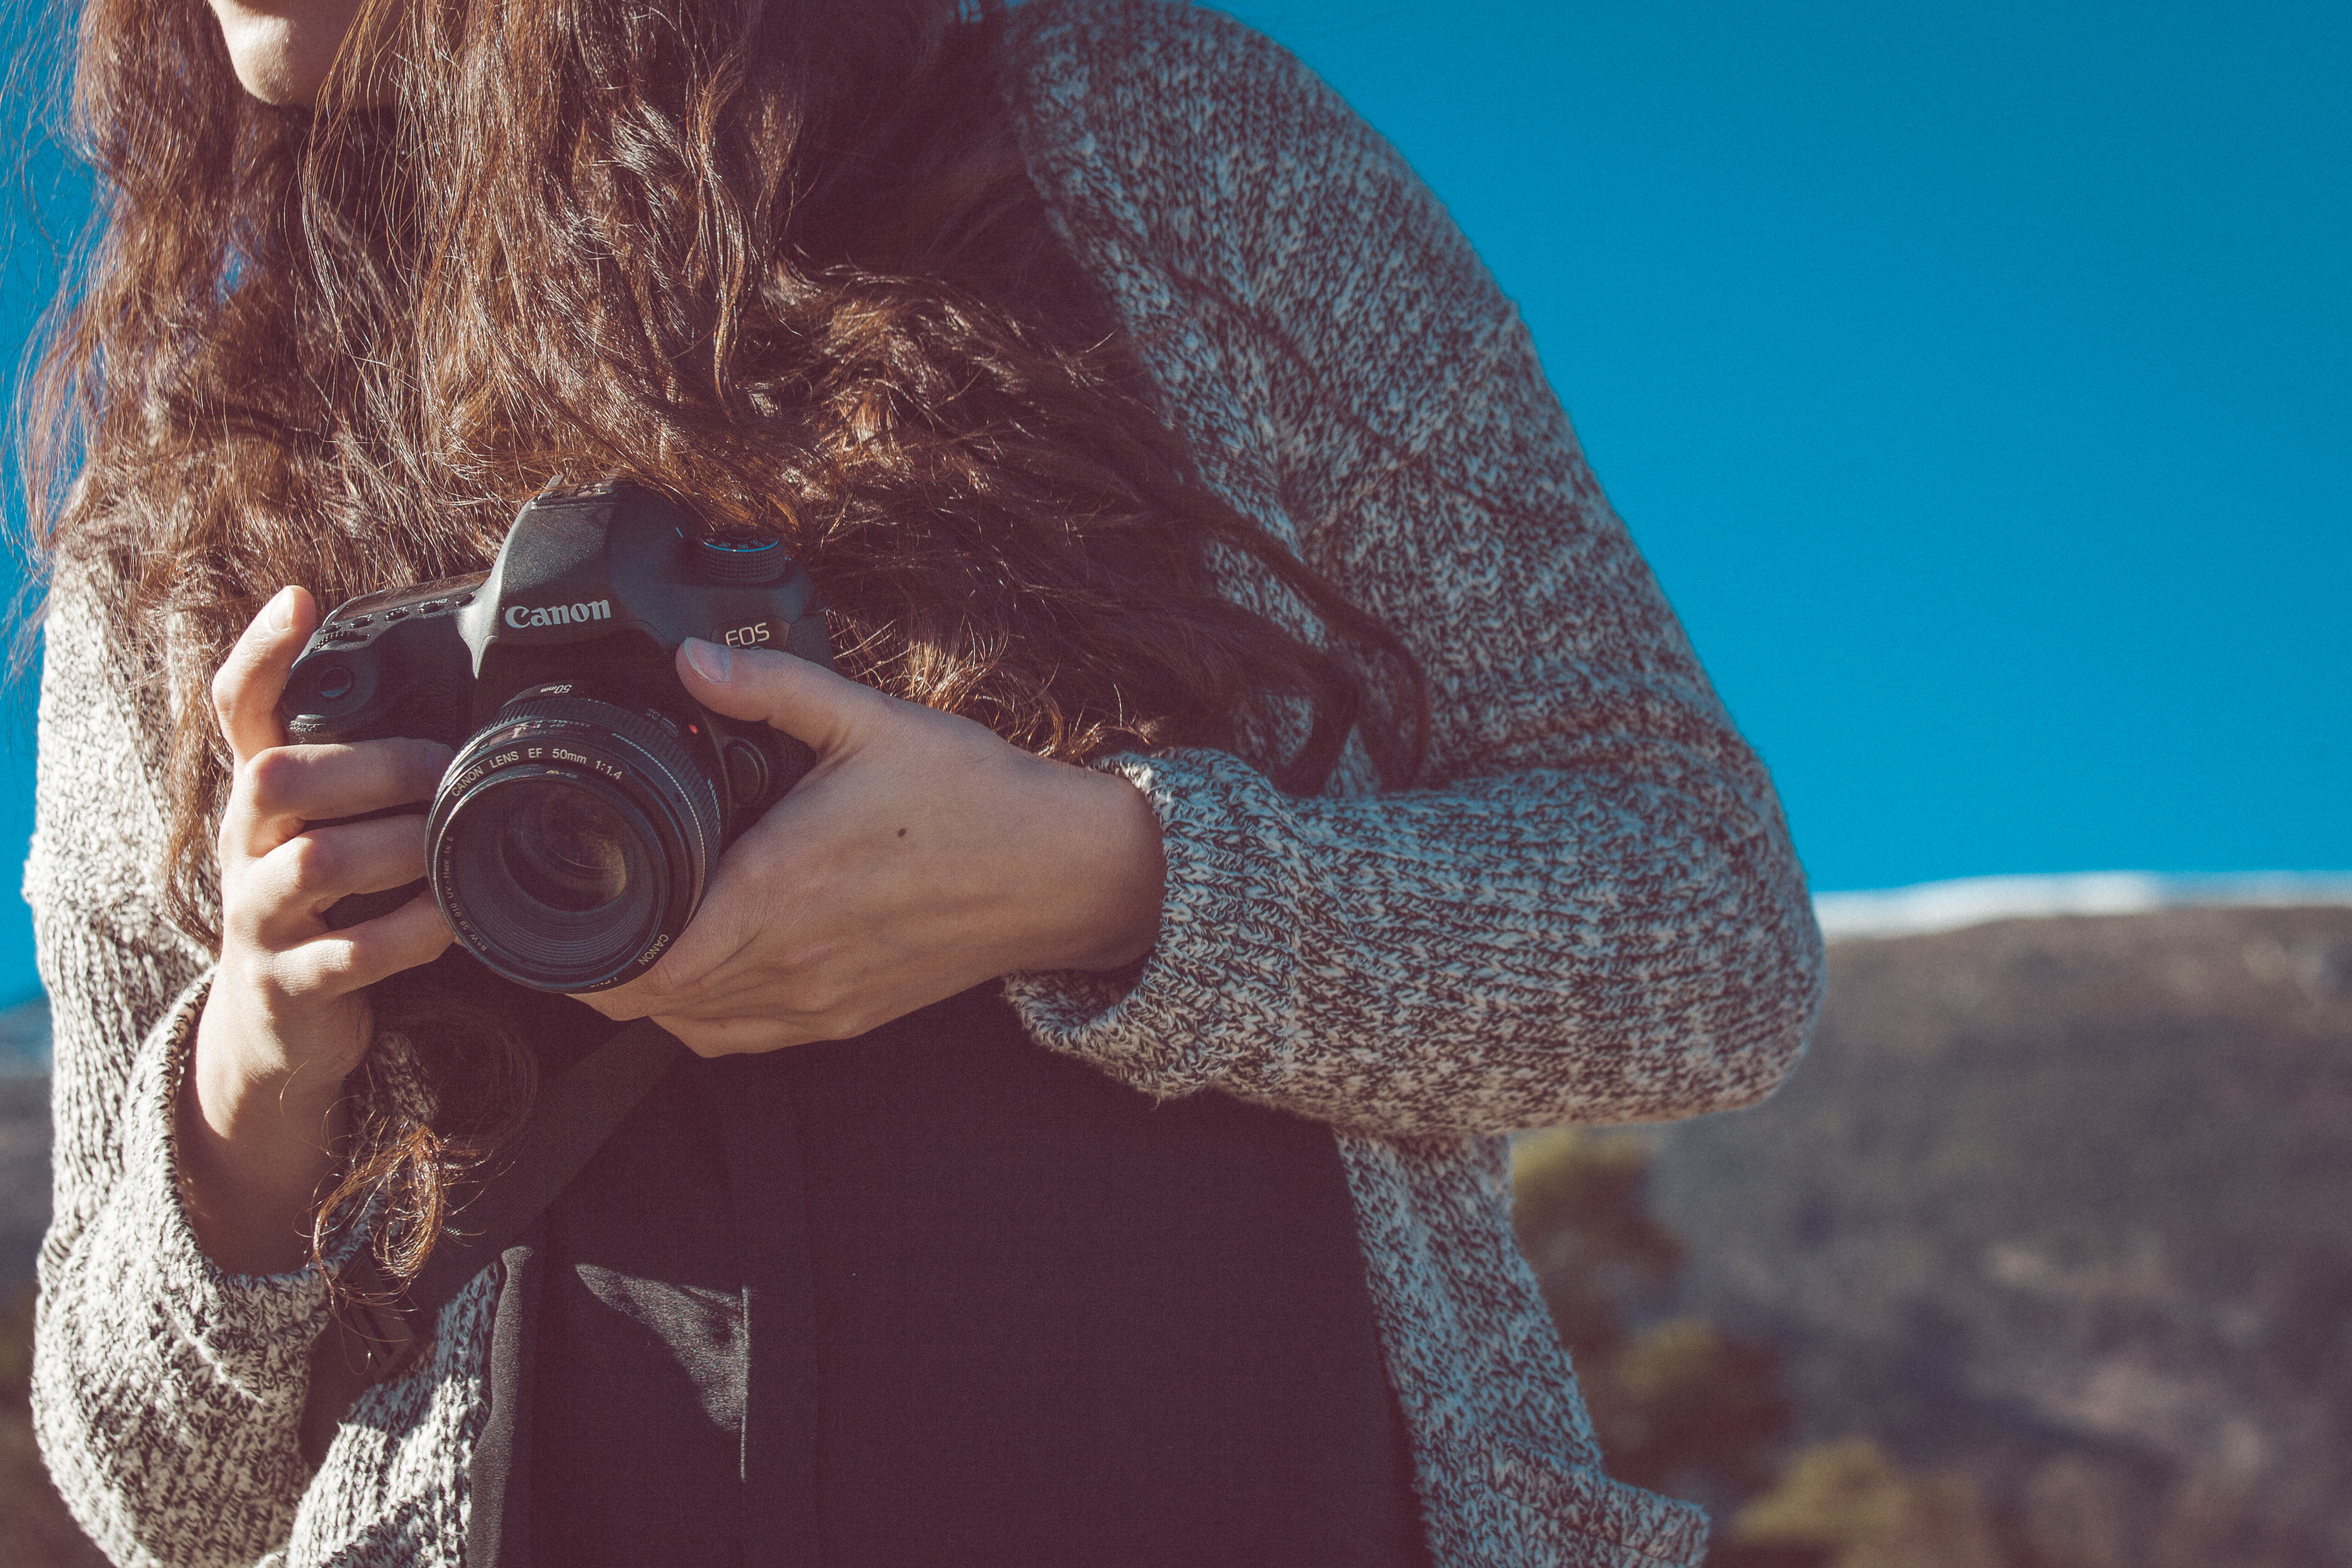 Poll – Can mirrorless cameras match DSLRs for your kind of photography?